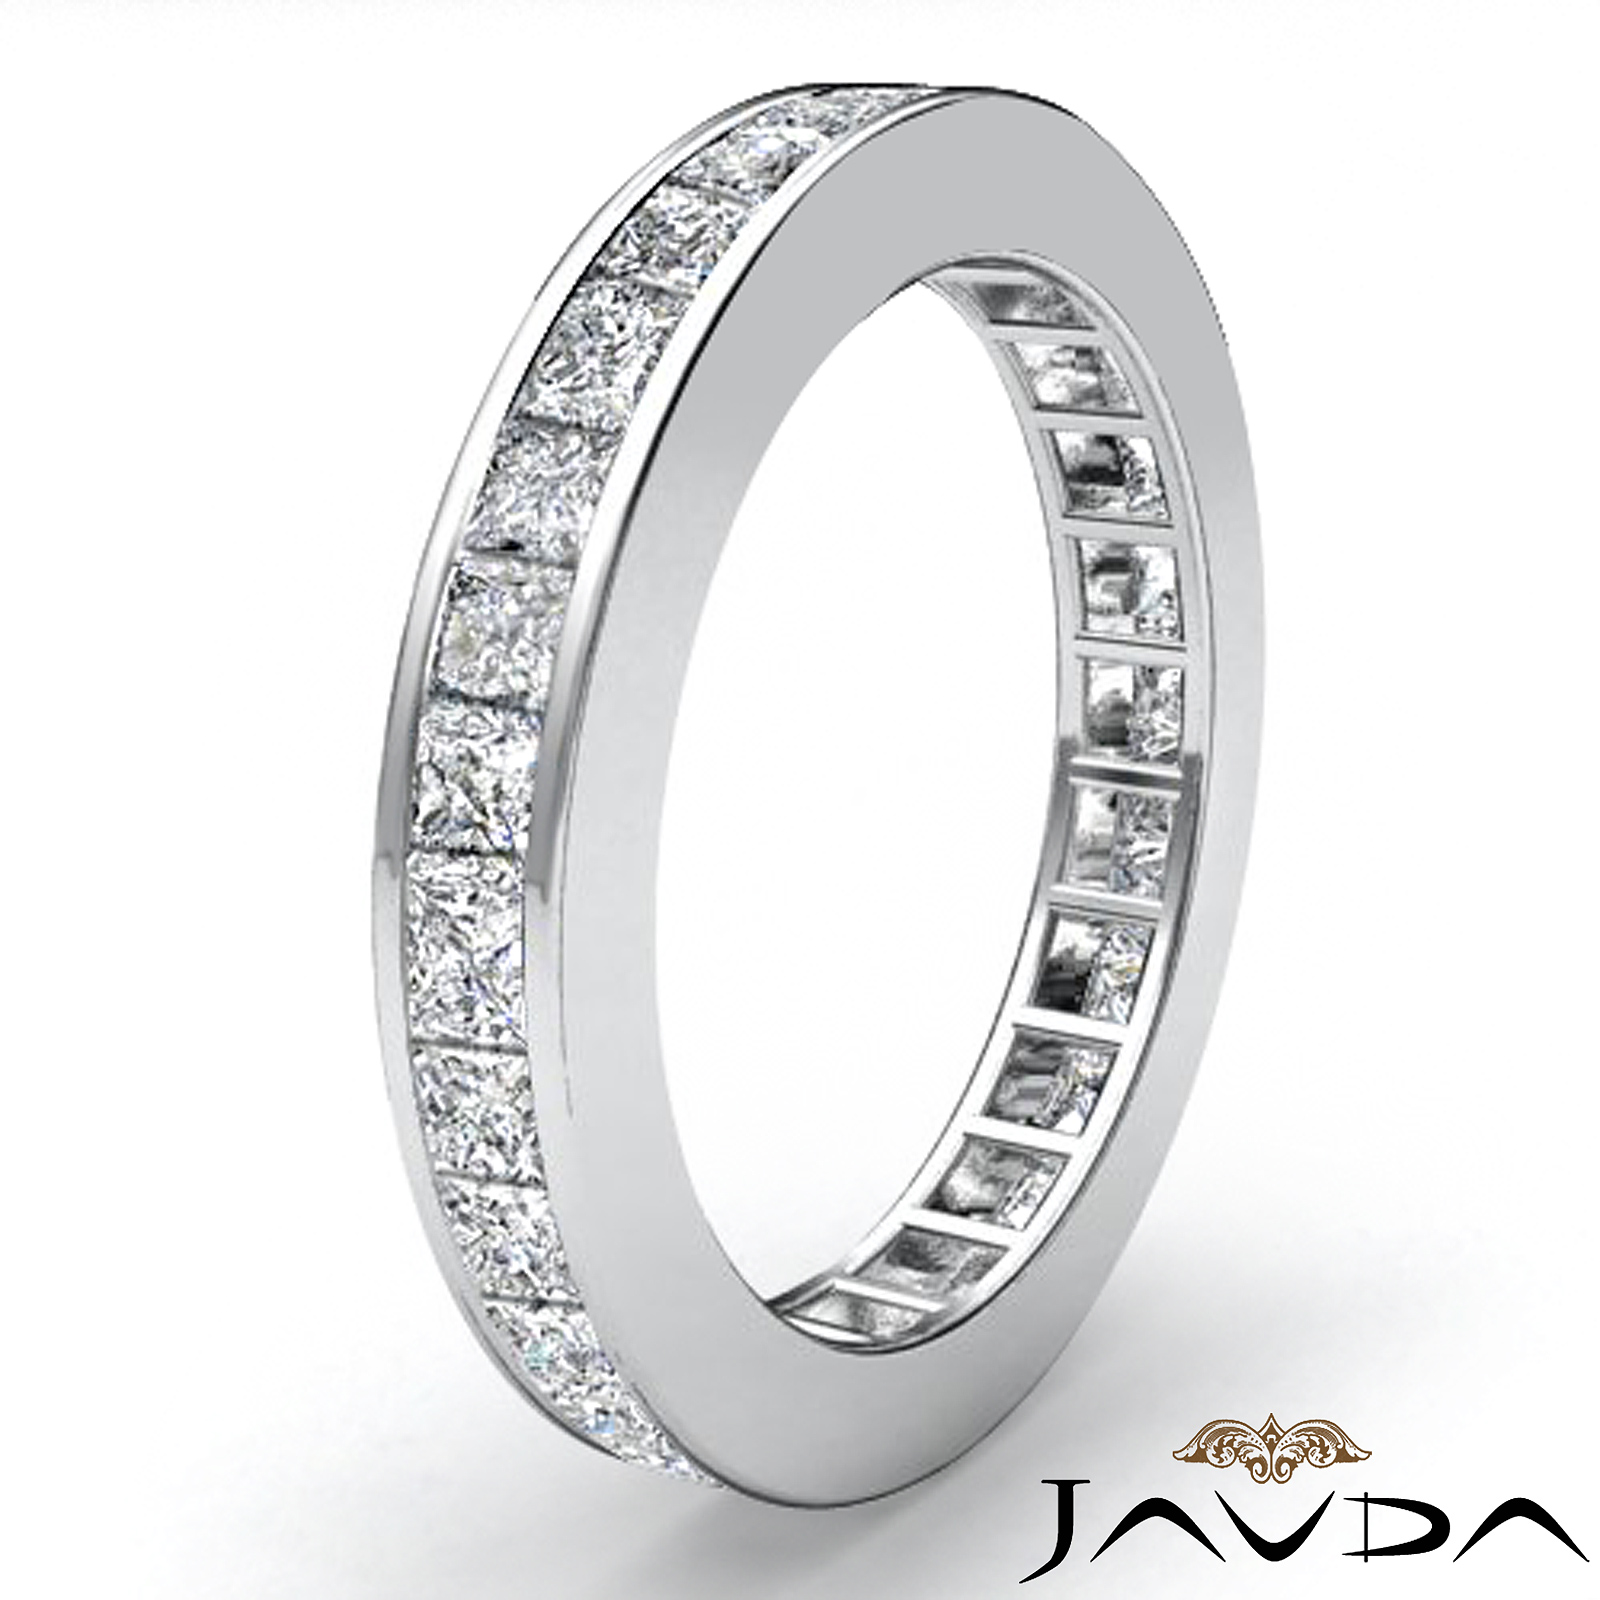 jewellery bands ladies baguette cut st wedding asscher valley platinum band mjs default diamond fortitude james